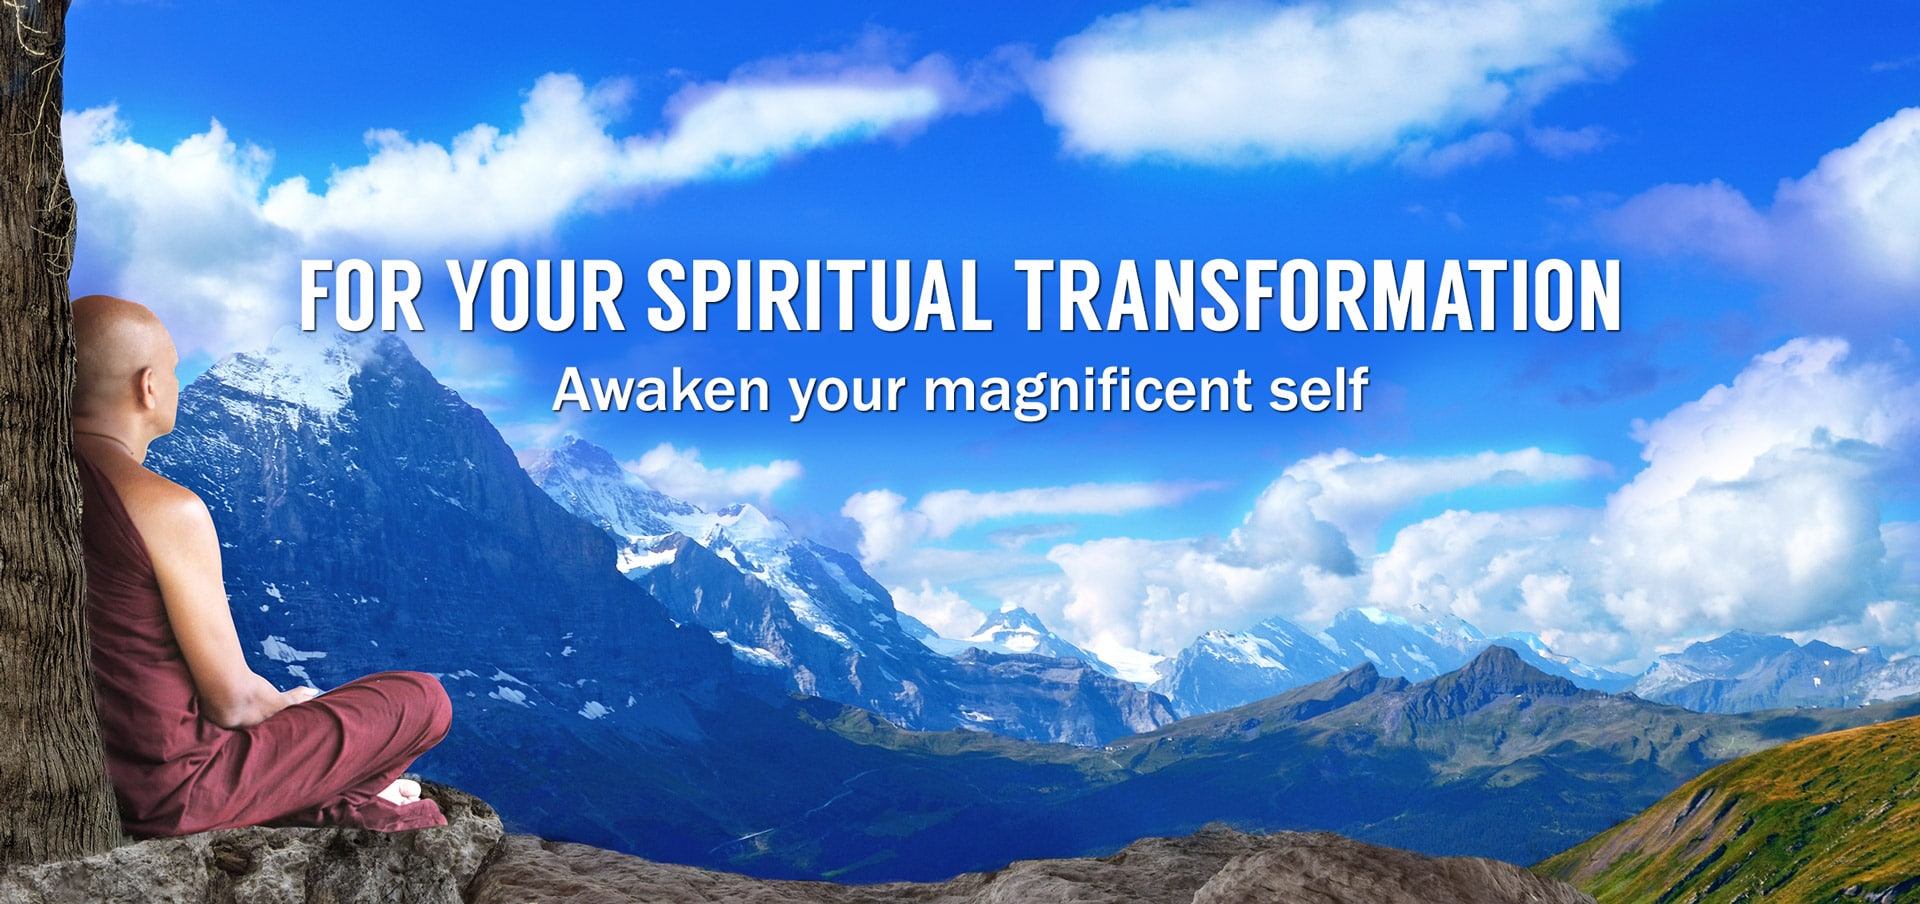 For your spiritual transformation - awaken your magnificent self